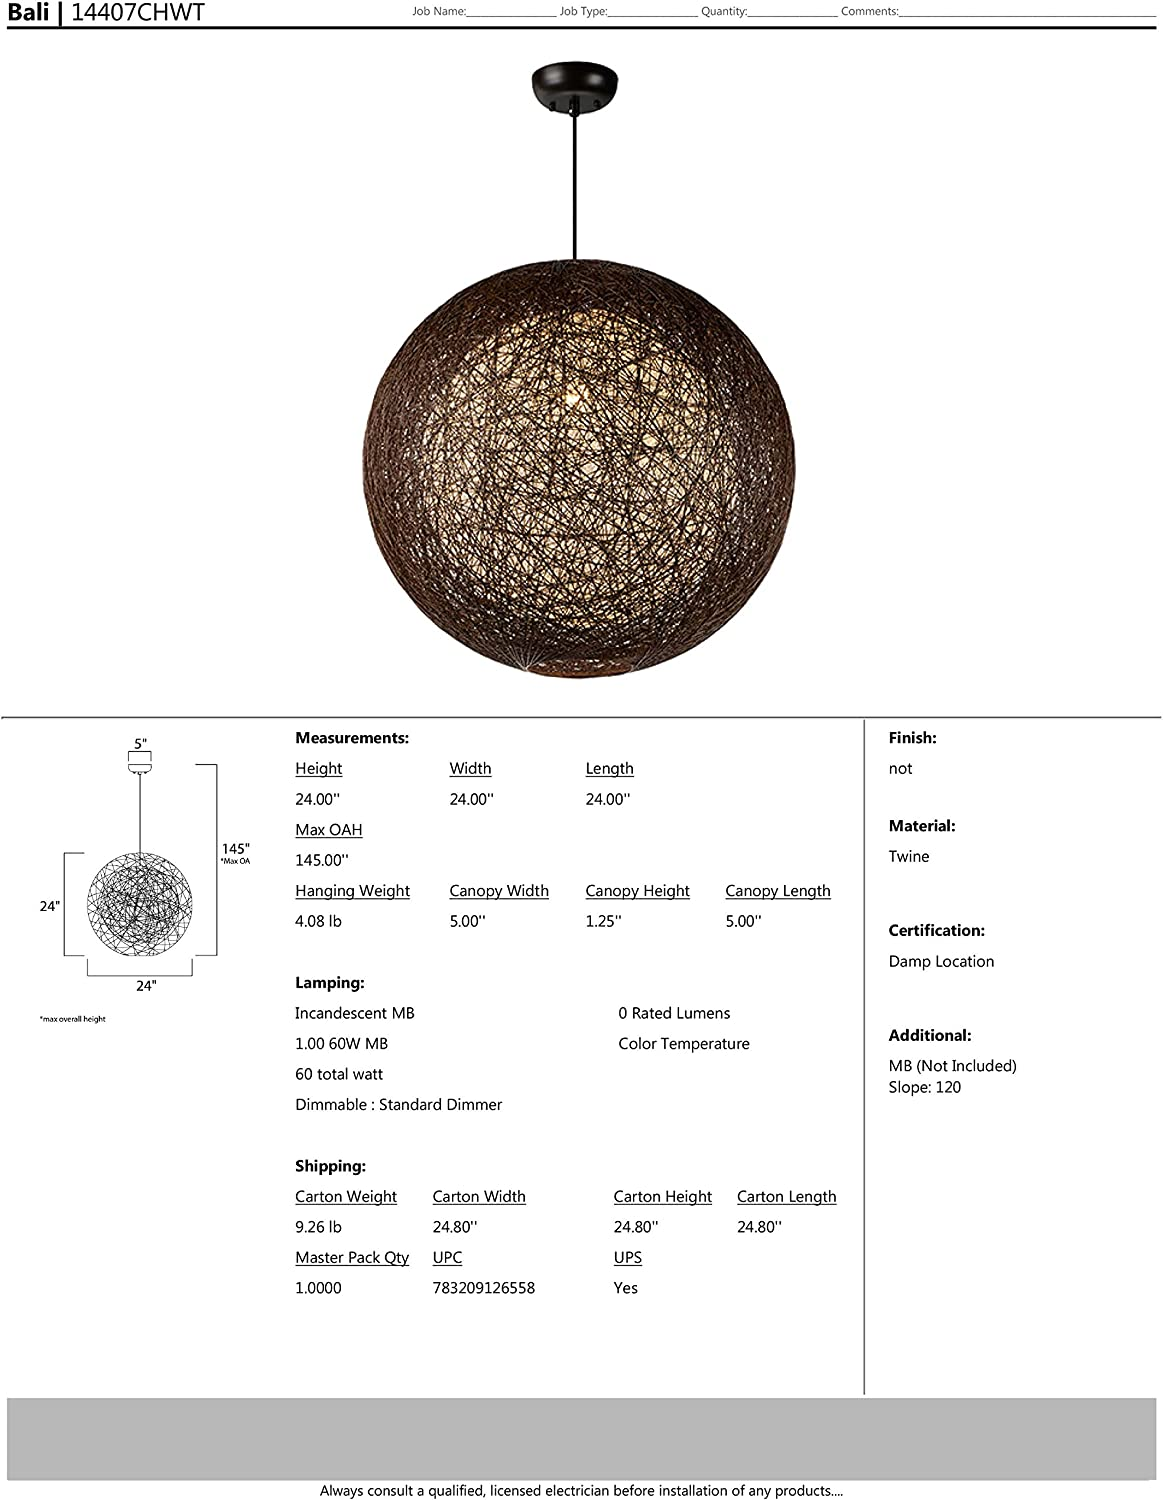 Rated Lumens Dry Safety Rating Standard Dimmable Steel Mesh Shade Material MB Incandescent Incandescent Bulb 60W Max. Finish Glass Maxim 14407CHWT Bali 1-Light Chandelier